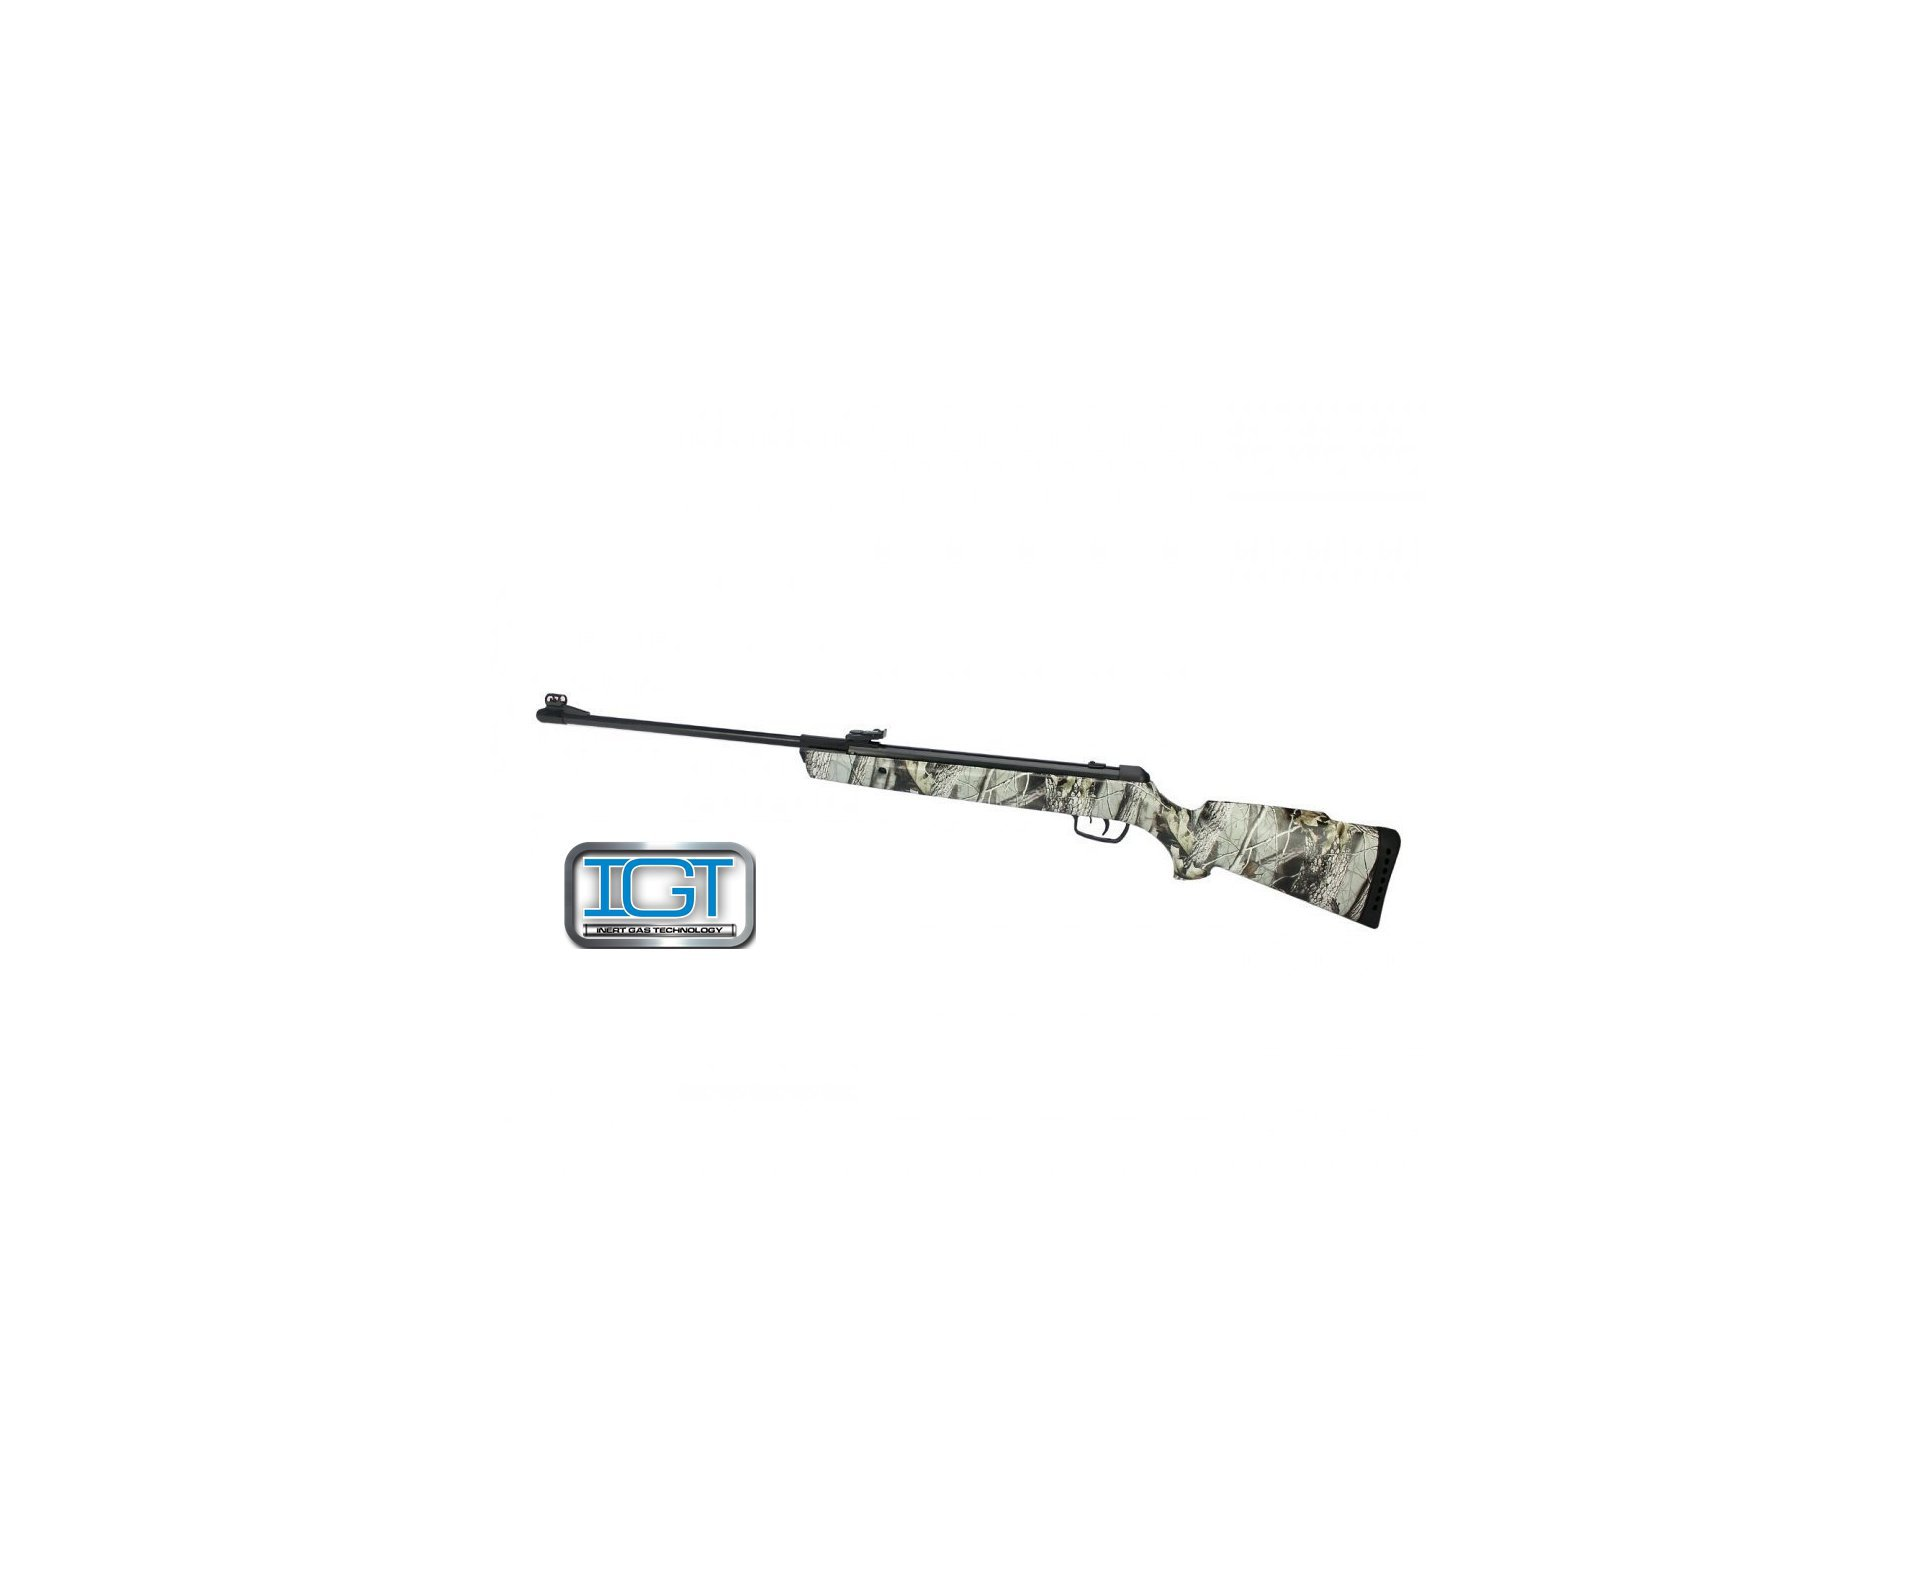 Carabina De Pressão Gamo Big Cat 1000 Camuflada 4,5 Mm Igt High Power Gás Ram 50kg